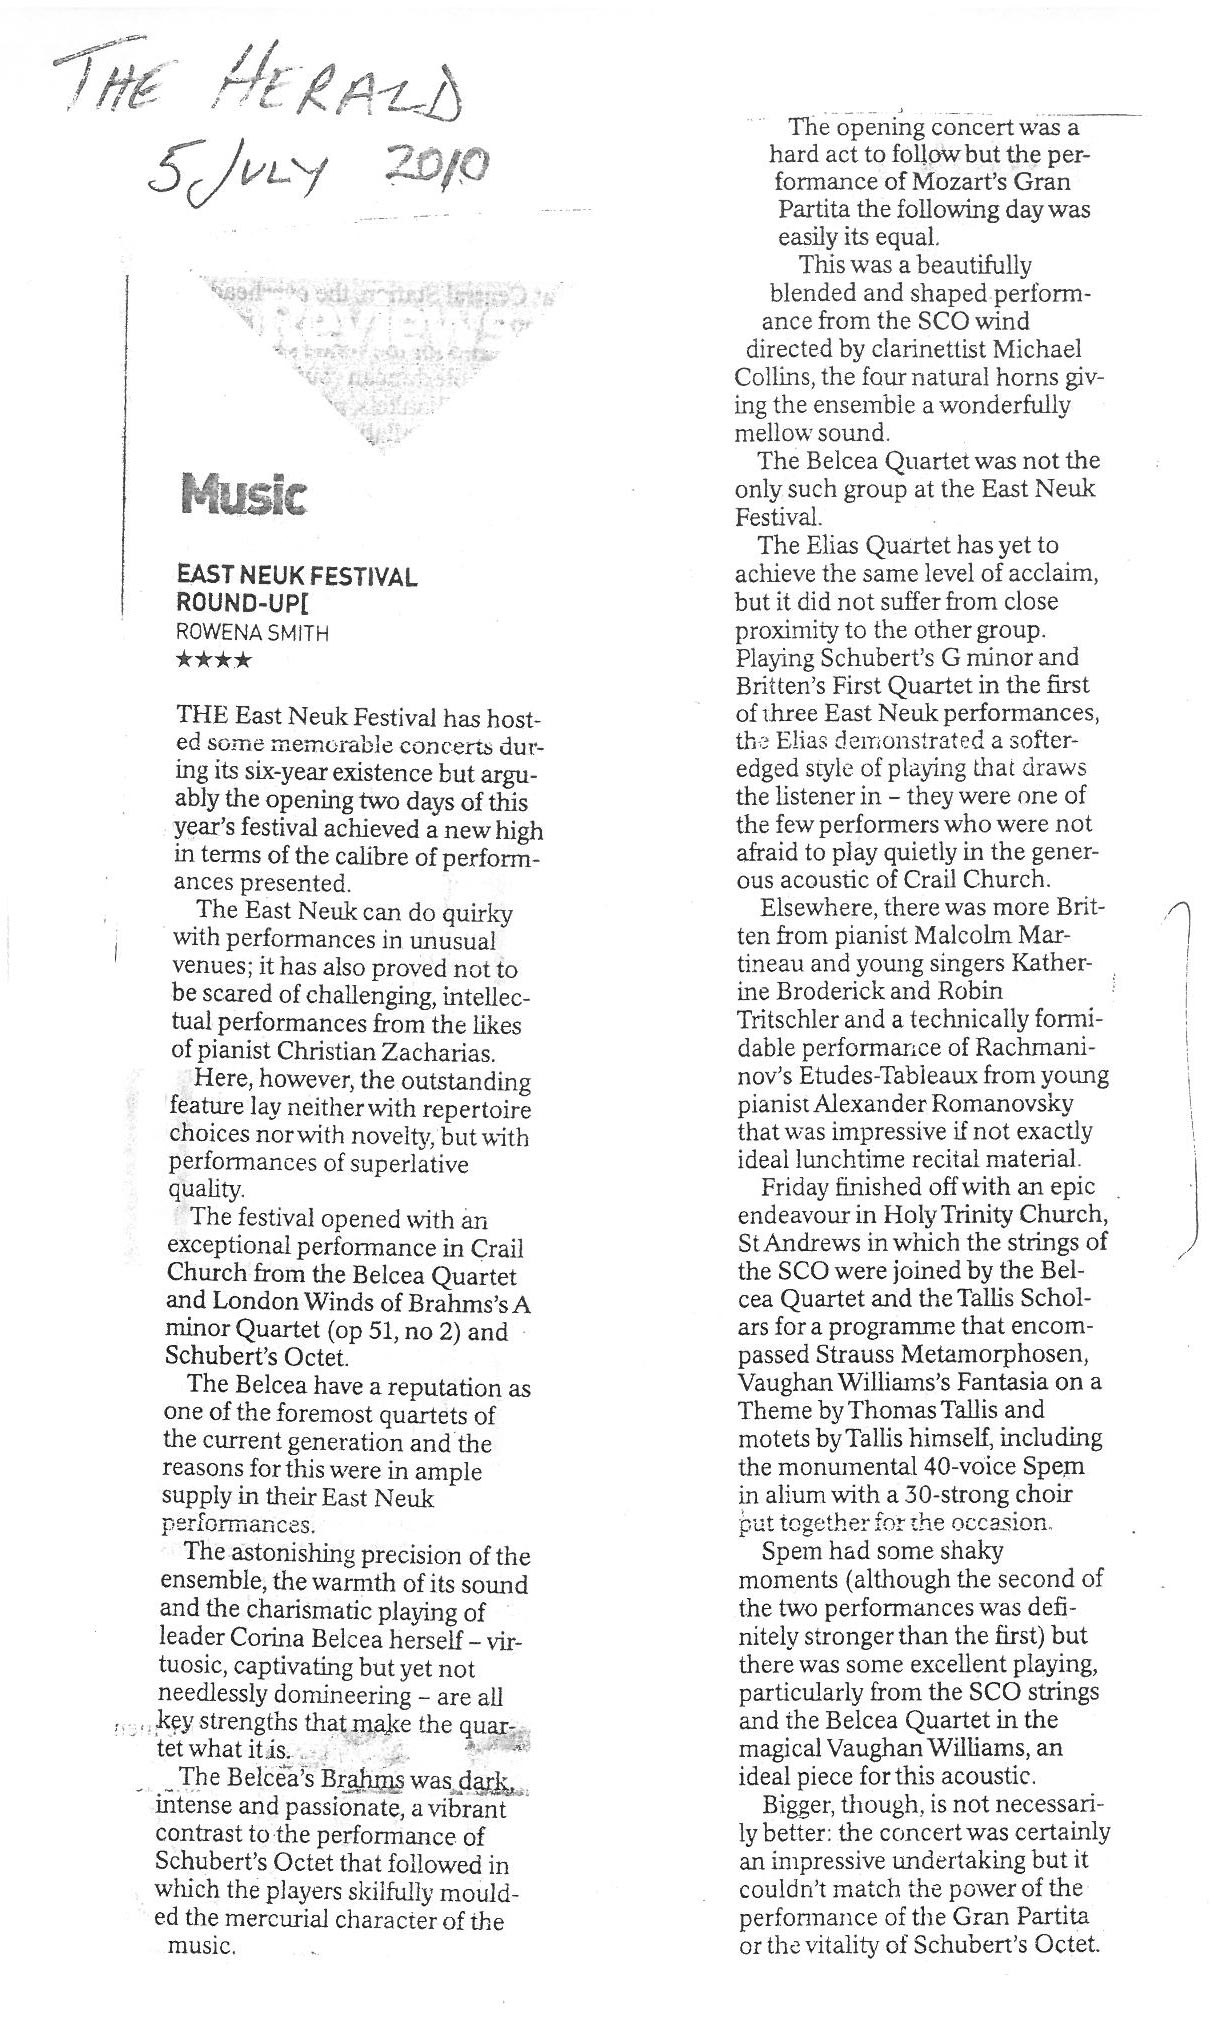 Review,-2010,-The-Herald